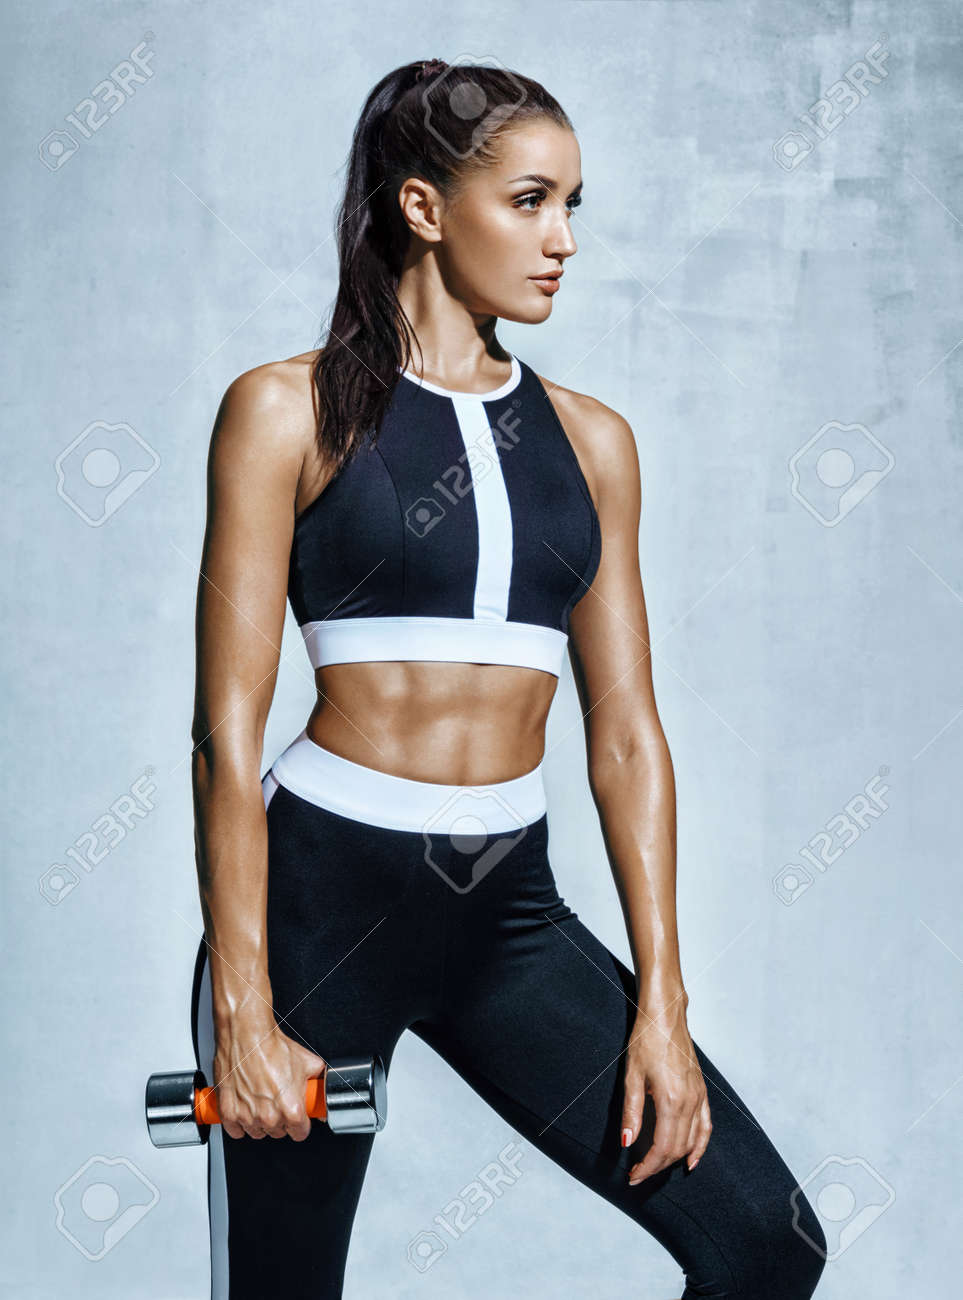 Sporty woman with dumbbell. Photo of muscular woman in black sportswear on grey background. Strength and motivation. - 97763626